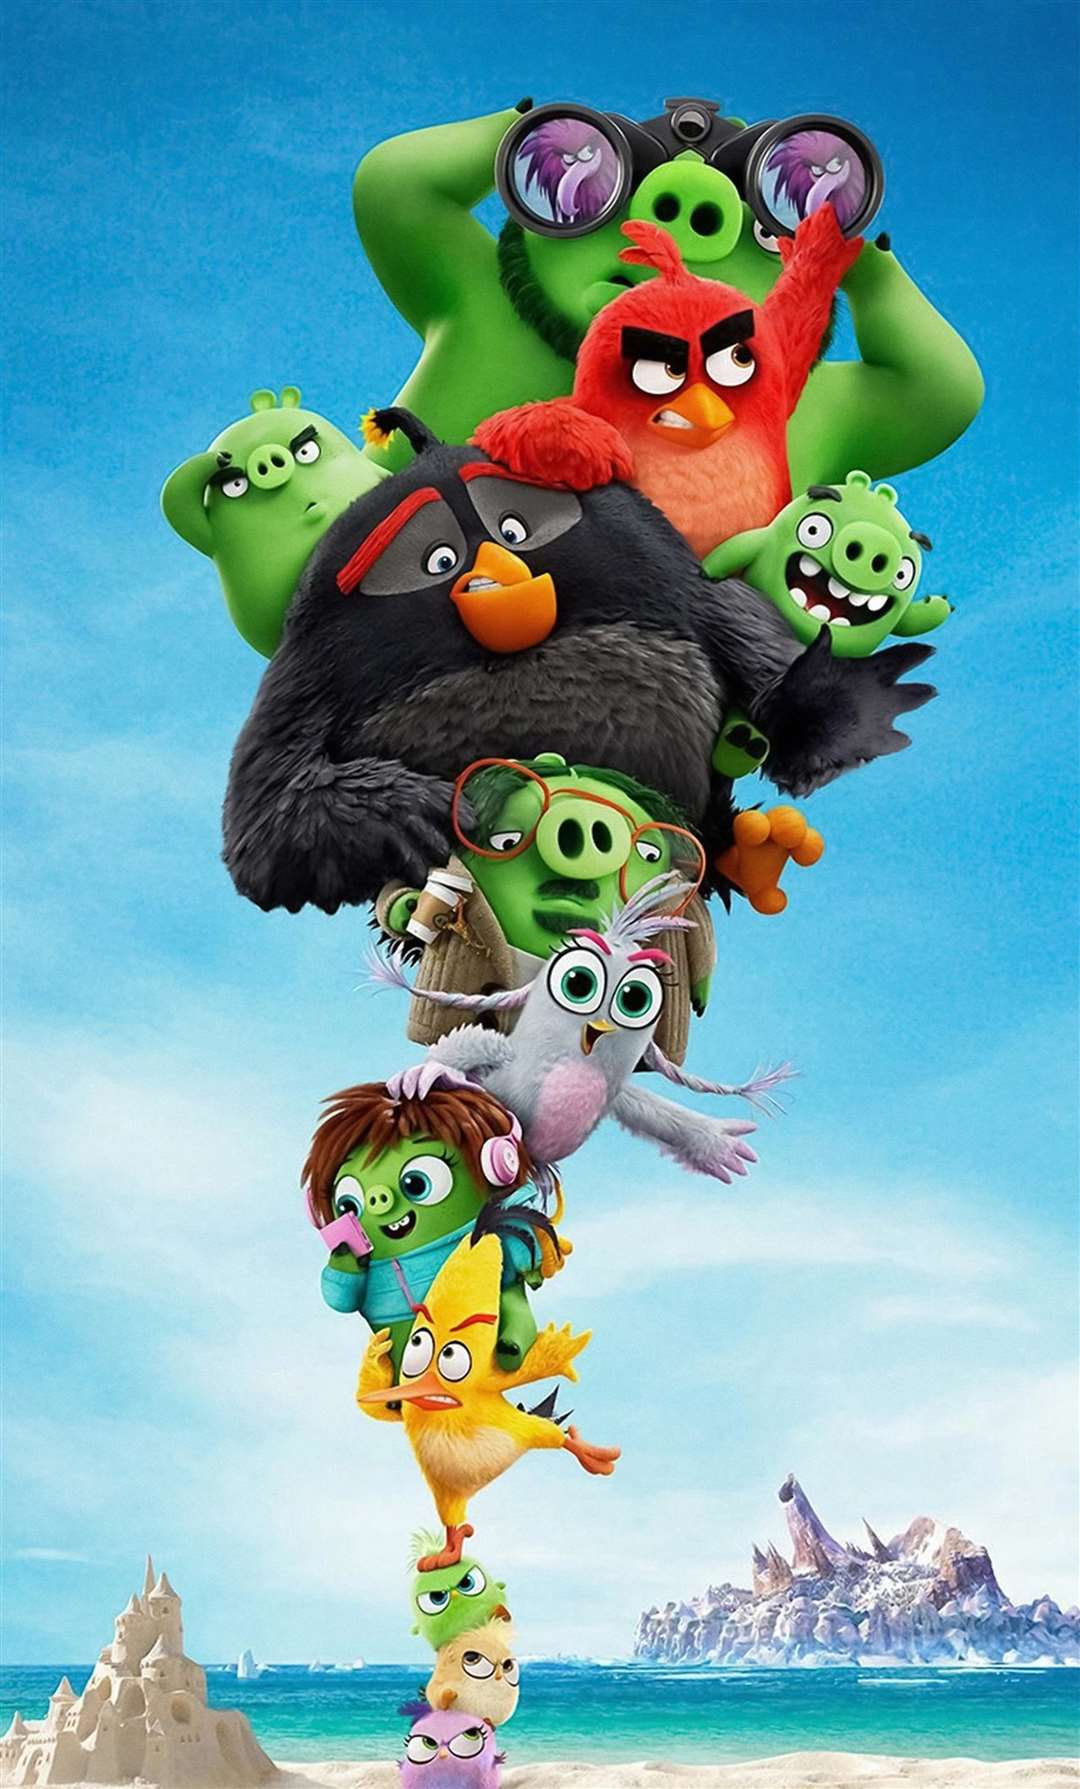 Angry Birds 2 (14908179)